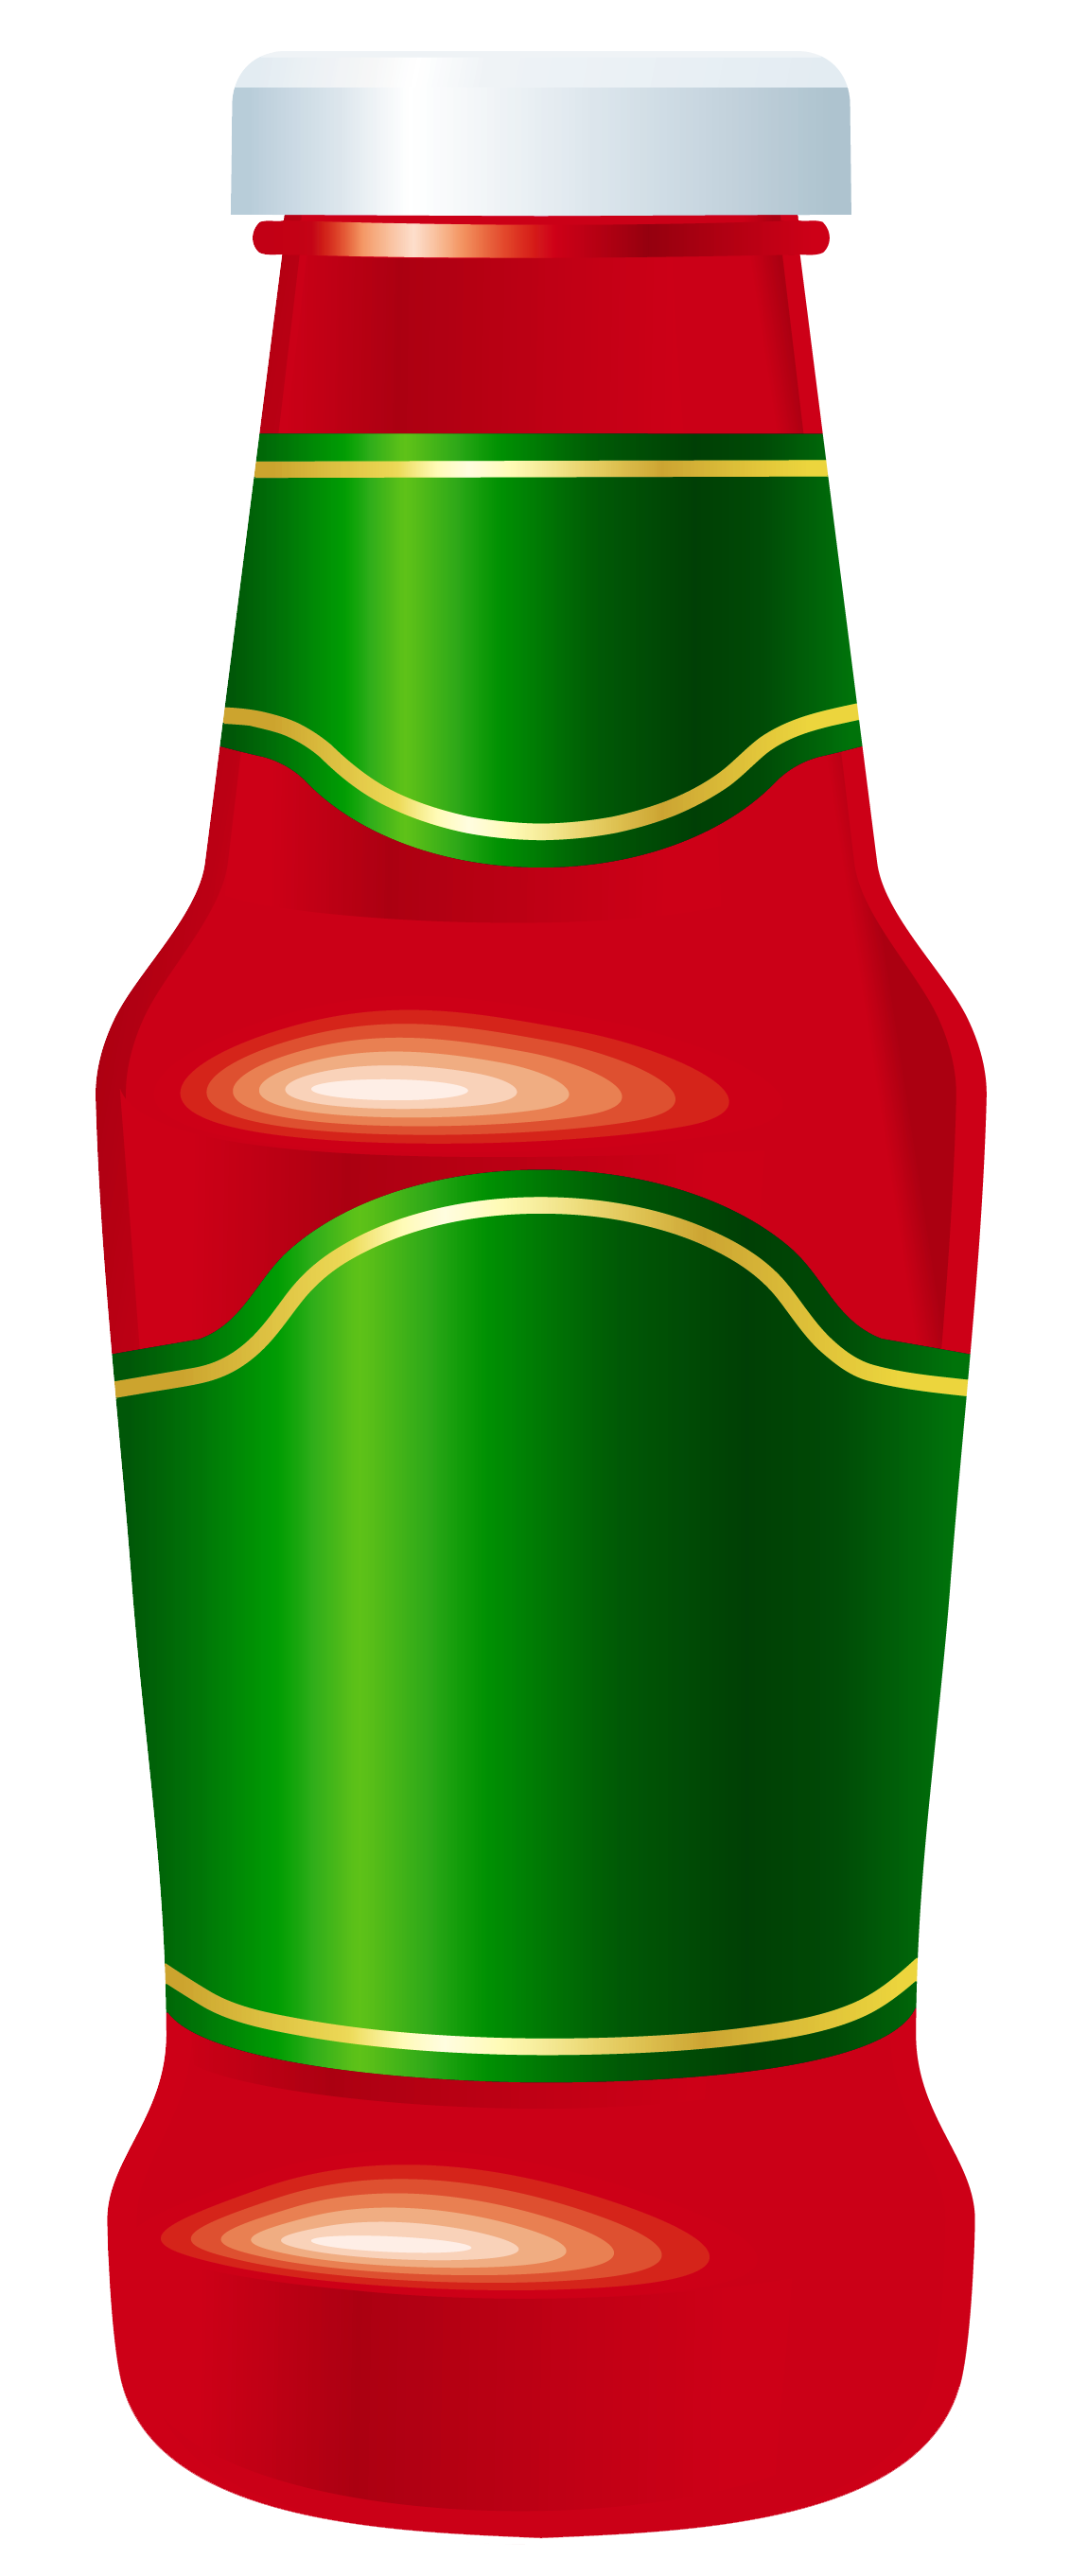 Ketchup Bottle Picture - ClipArt Best